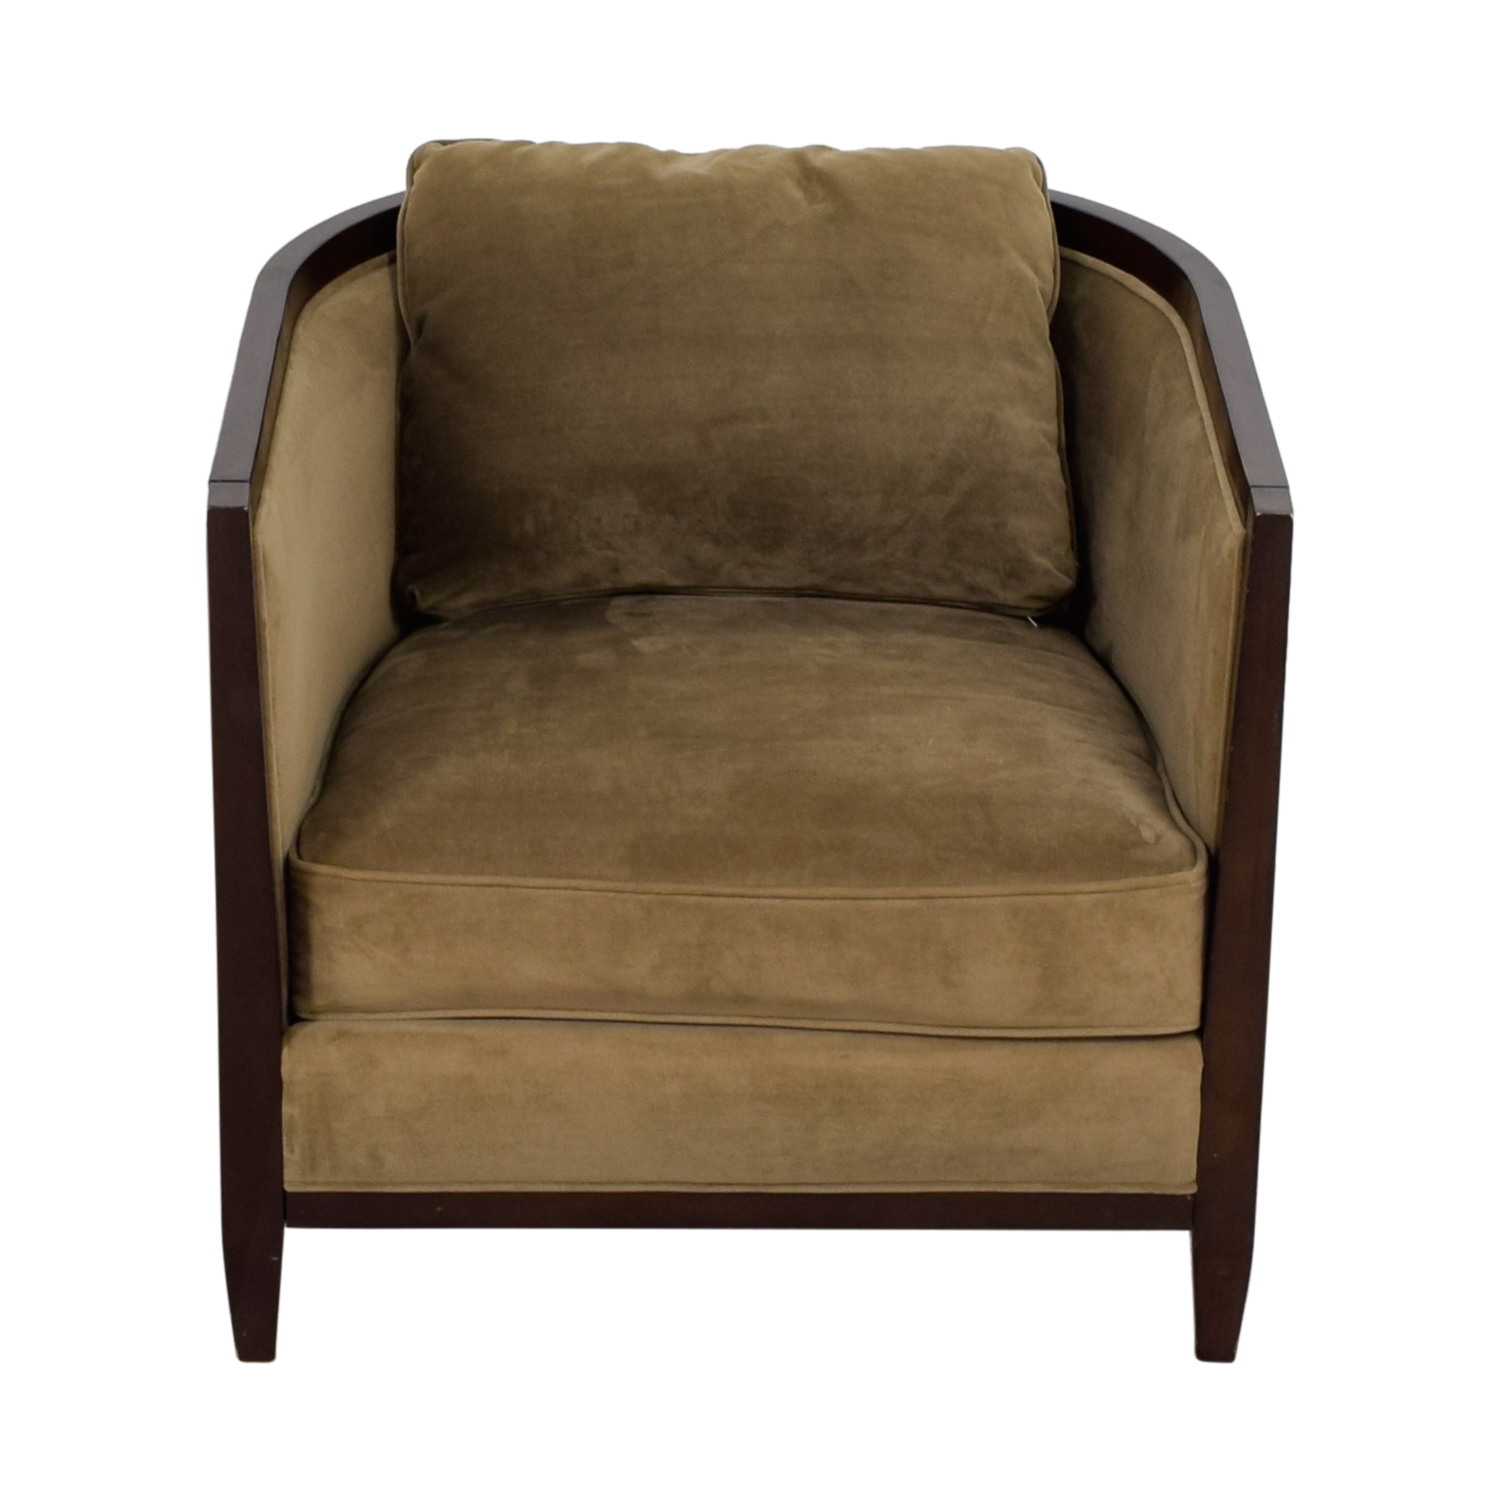 Bloomingdale's Bloomingdale's Beige Upholstered Wood Accent Chair